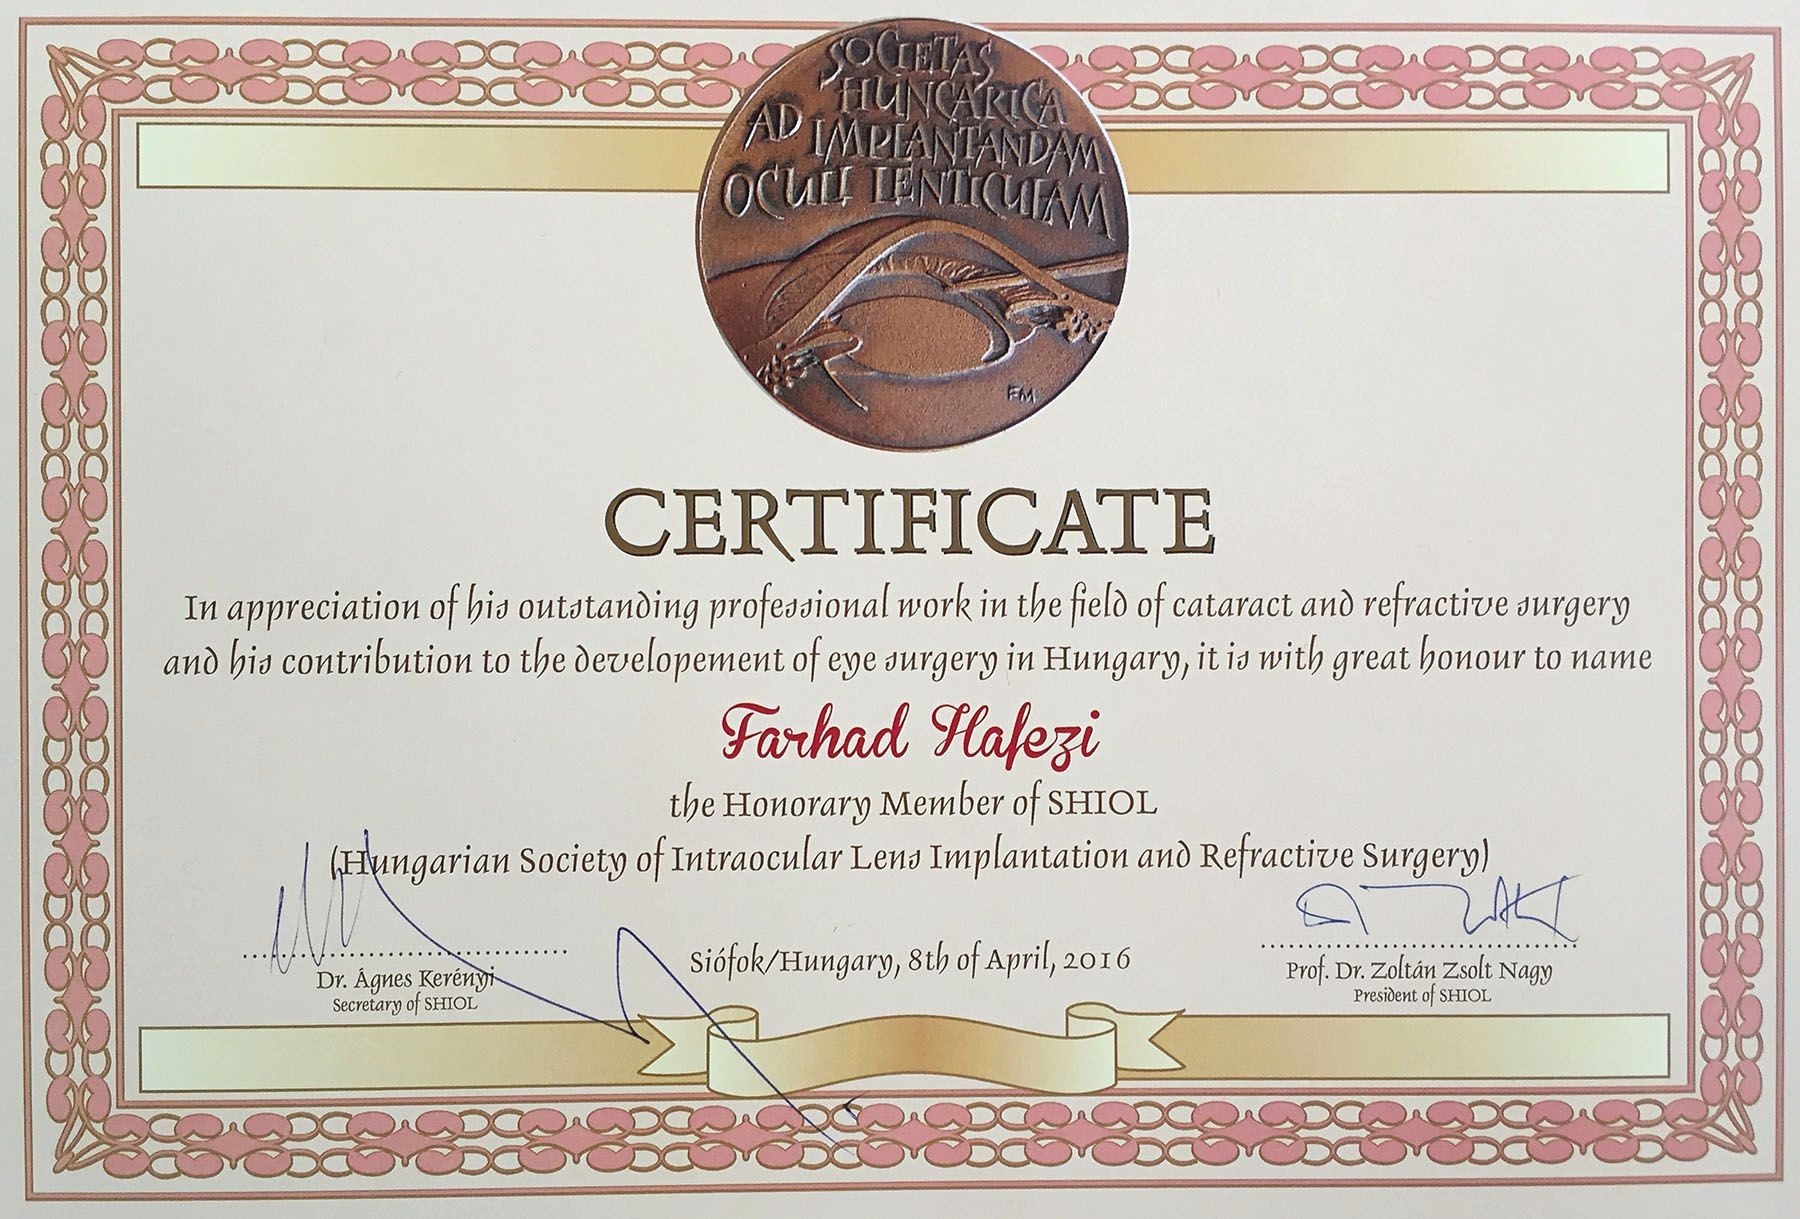 Member Of the Month Certificate Unique April 2016 Farhad Hafezi to Be E Honorary Member Of